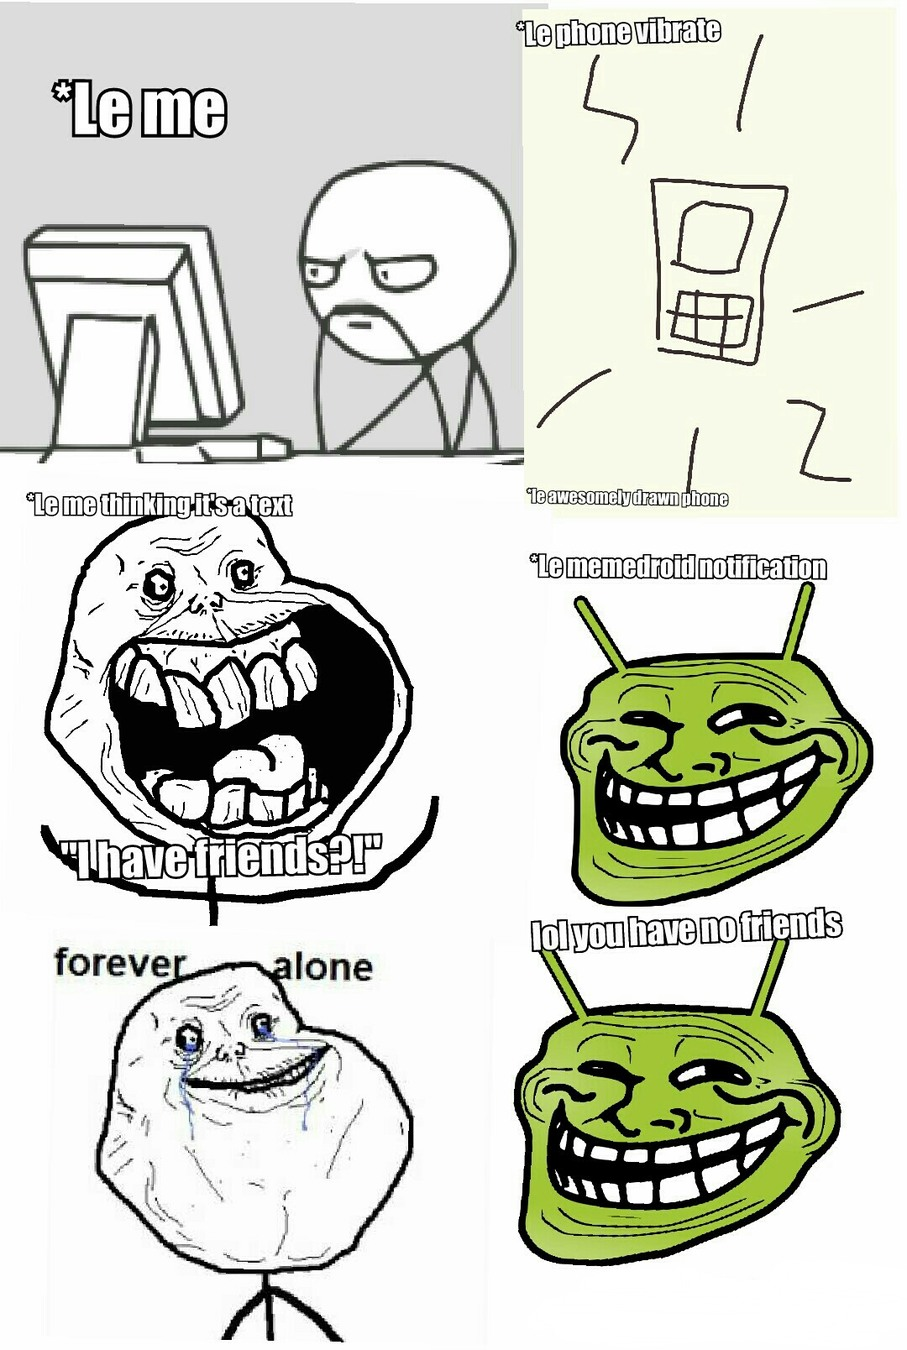 Title is forever alone - meme